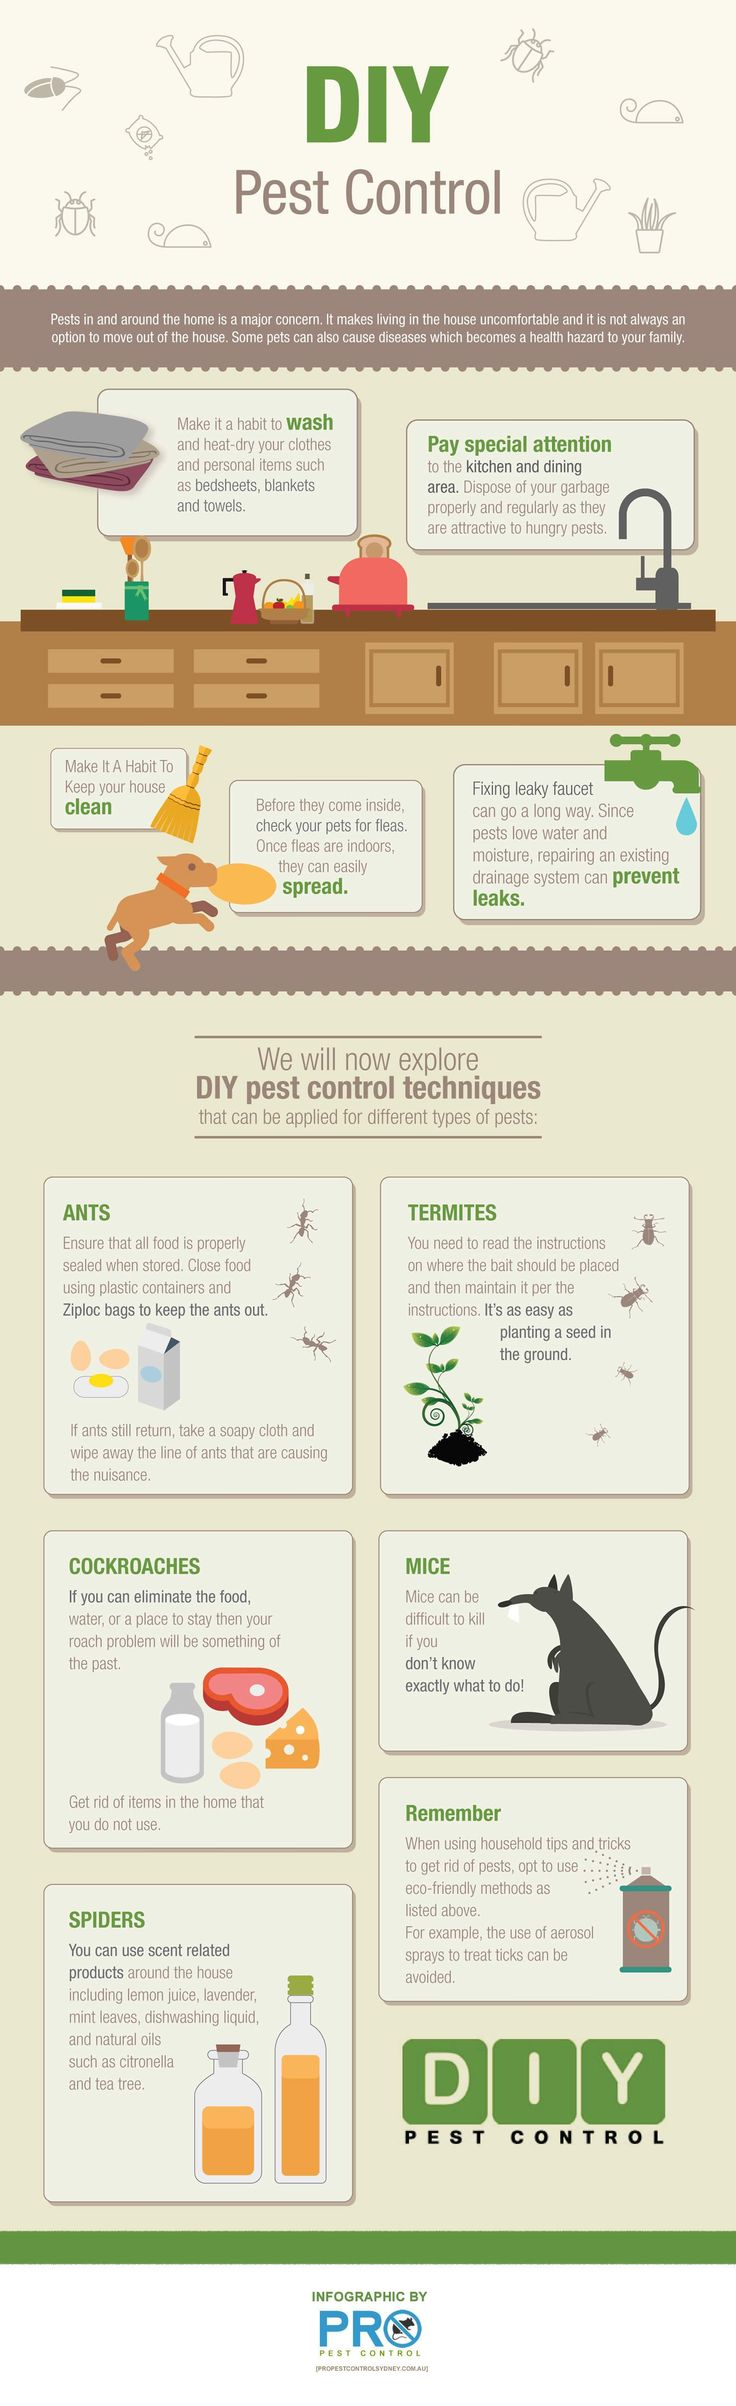 77 best residential and commercial pest control images on pinterest check out the latest infographic we created for diy pest control please share if you like solutioingenieria Image collections